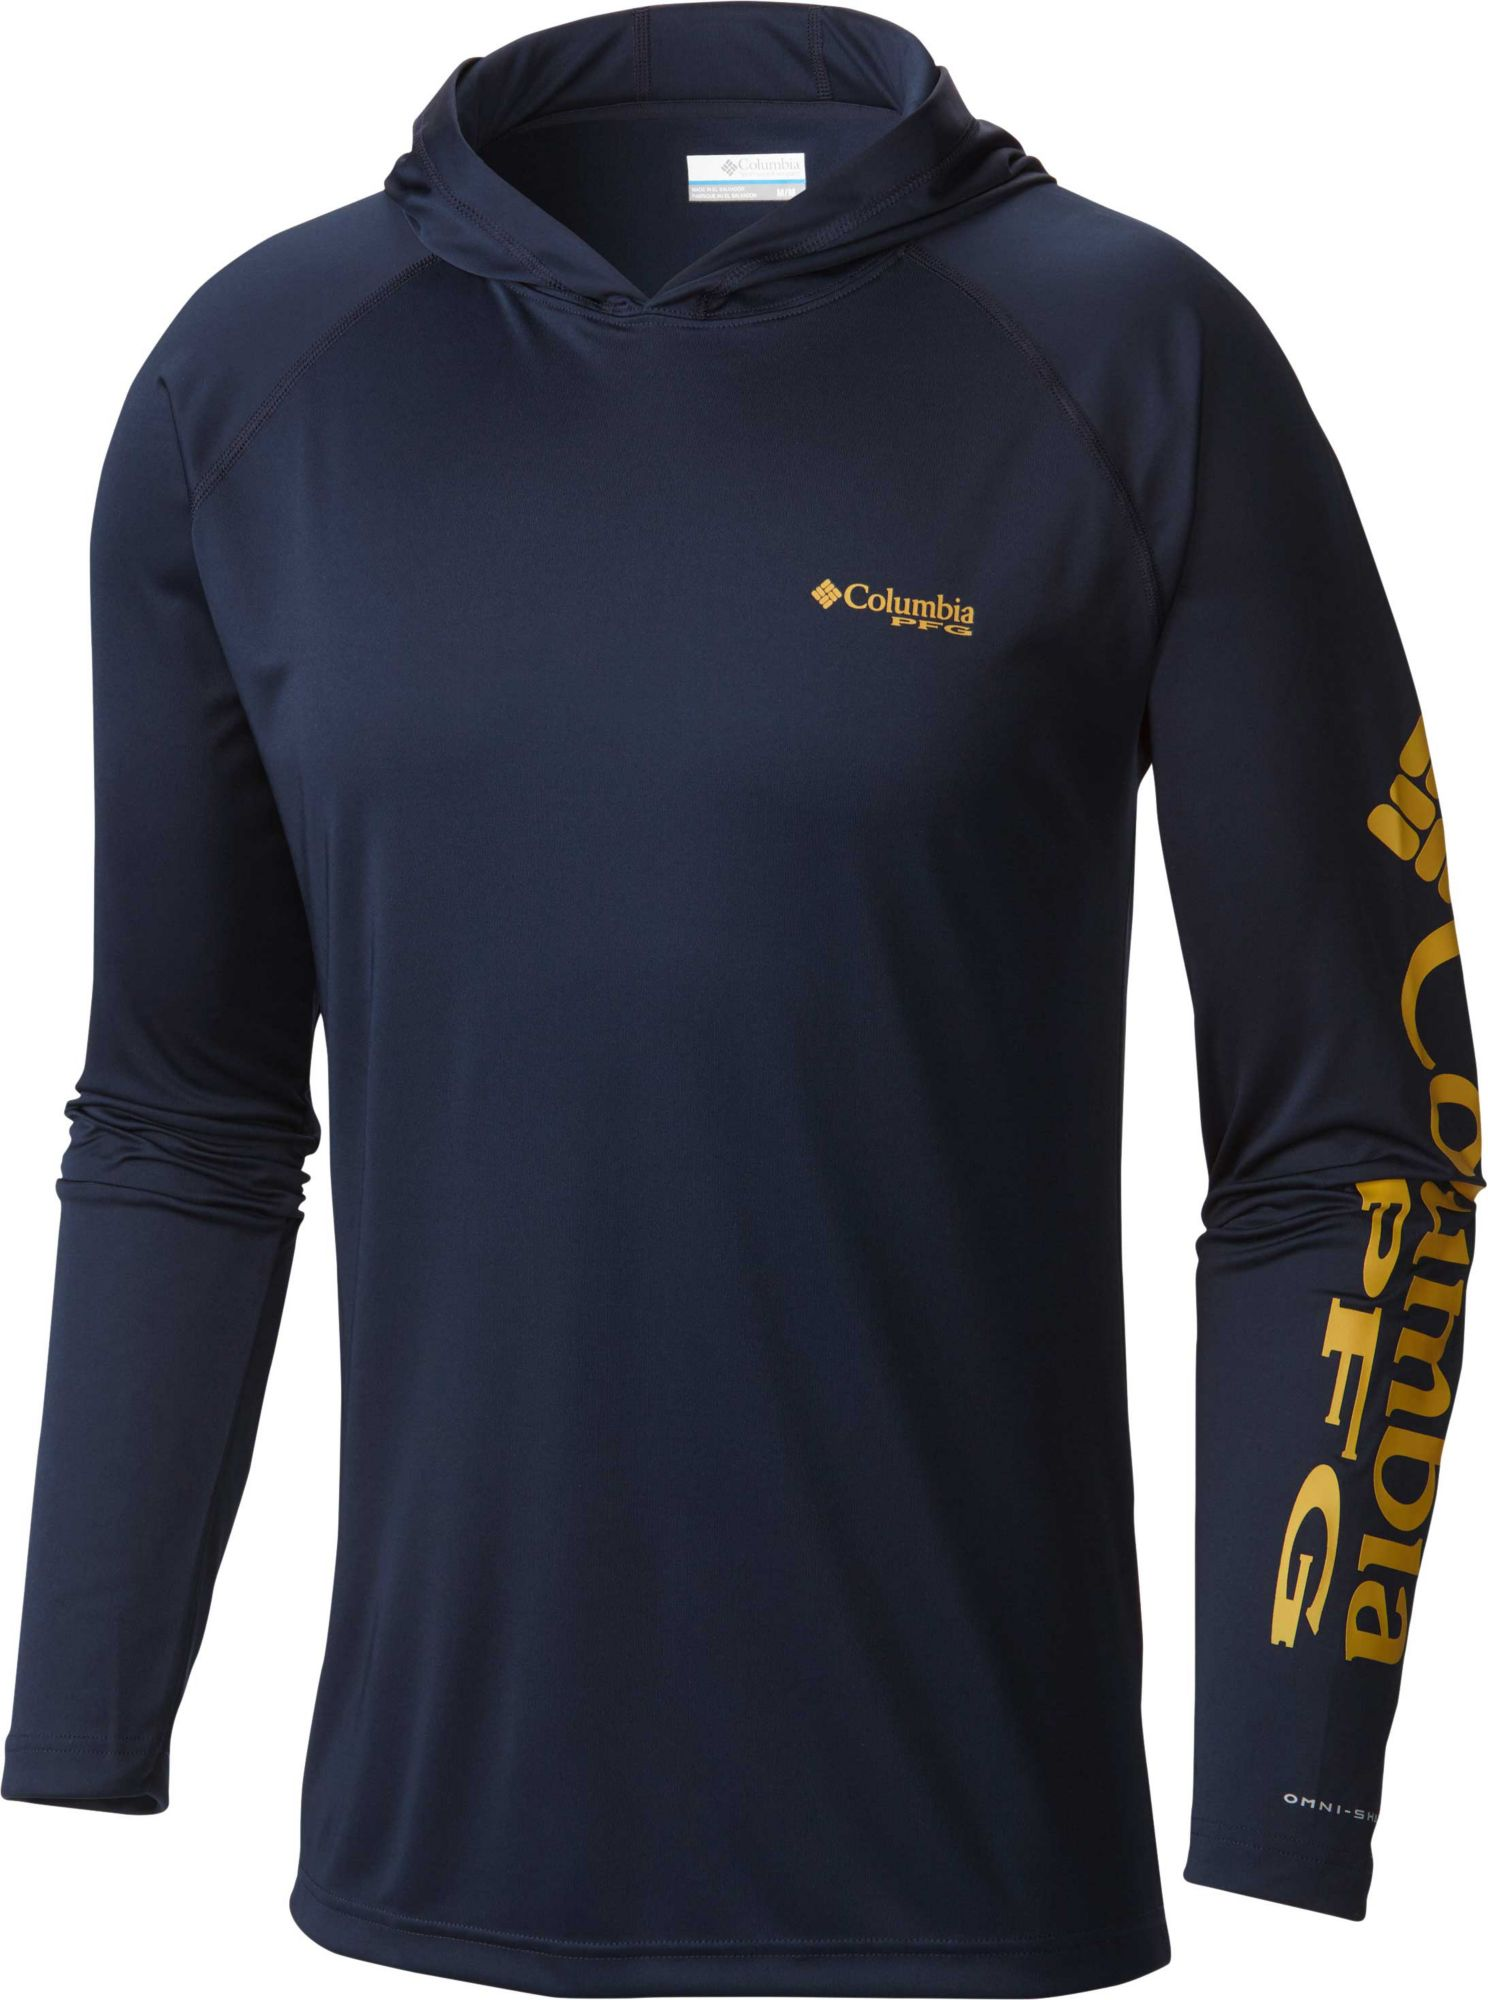 competitive price dc75f fae4d Columbia Mens PFG Terminal Tackle Hoodie DICKS Sporting Goods 80%OFF